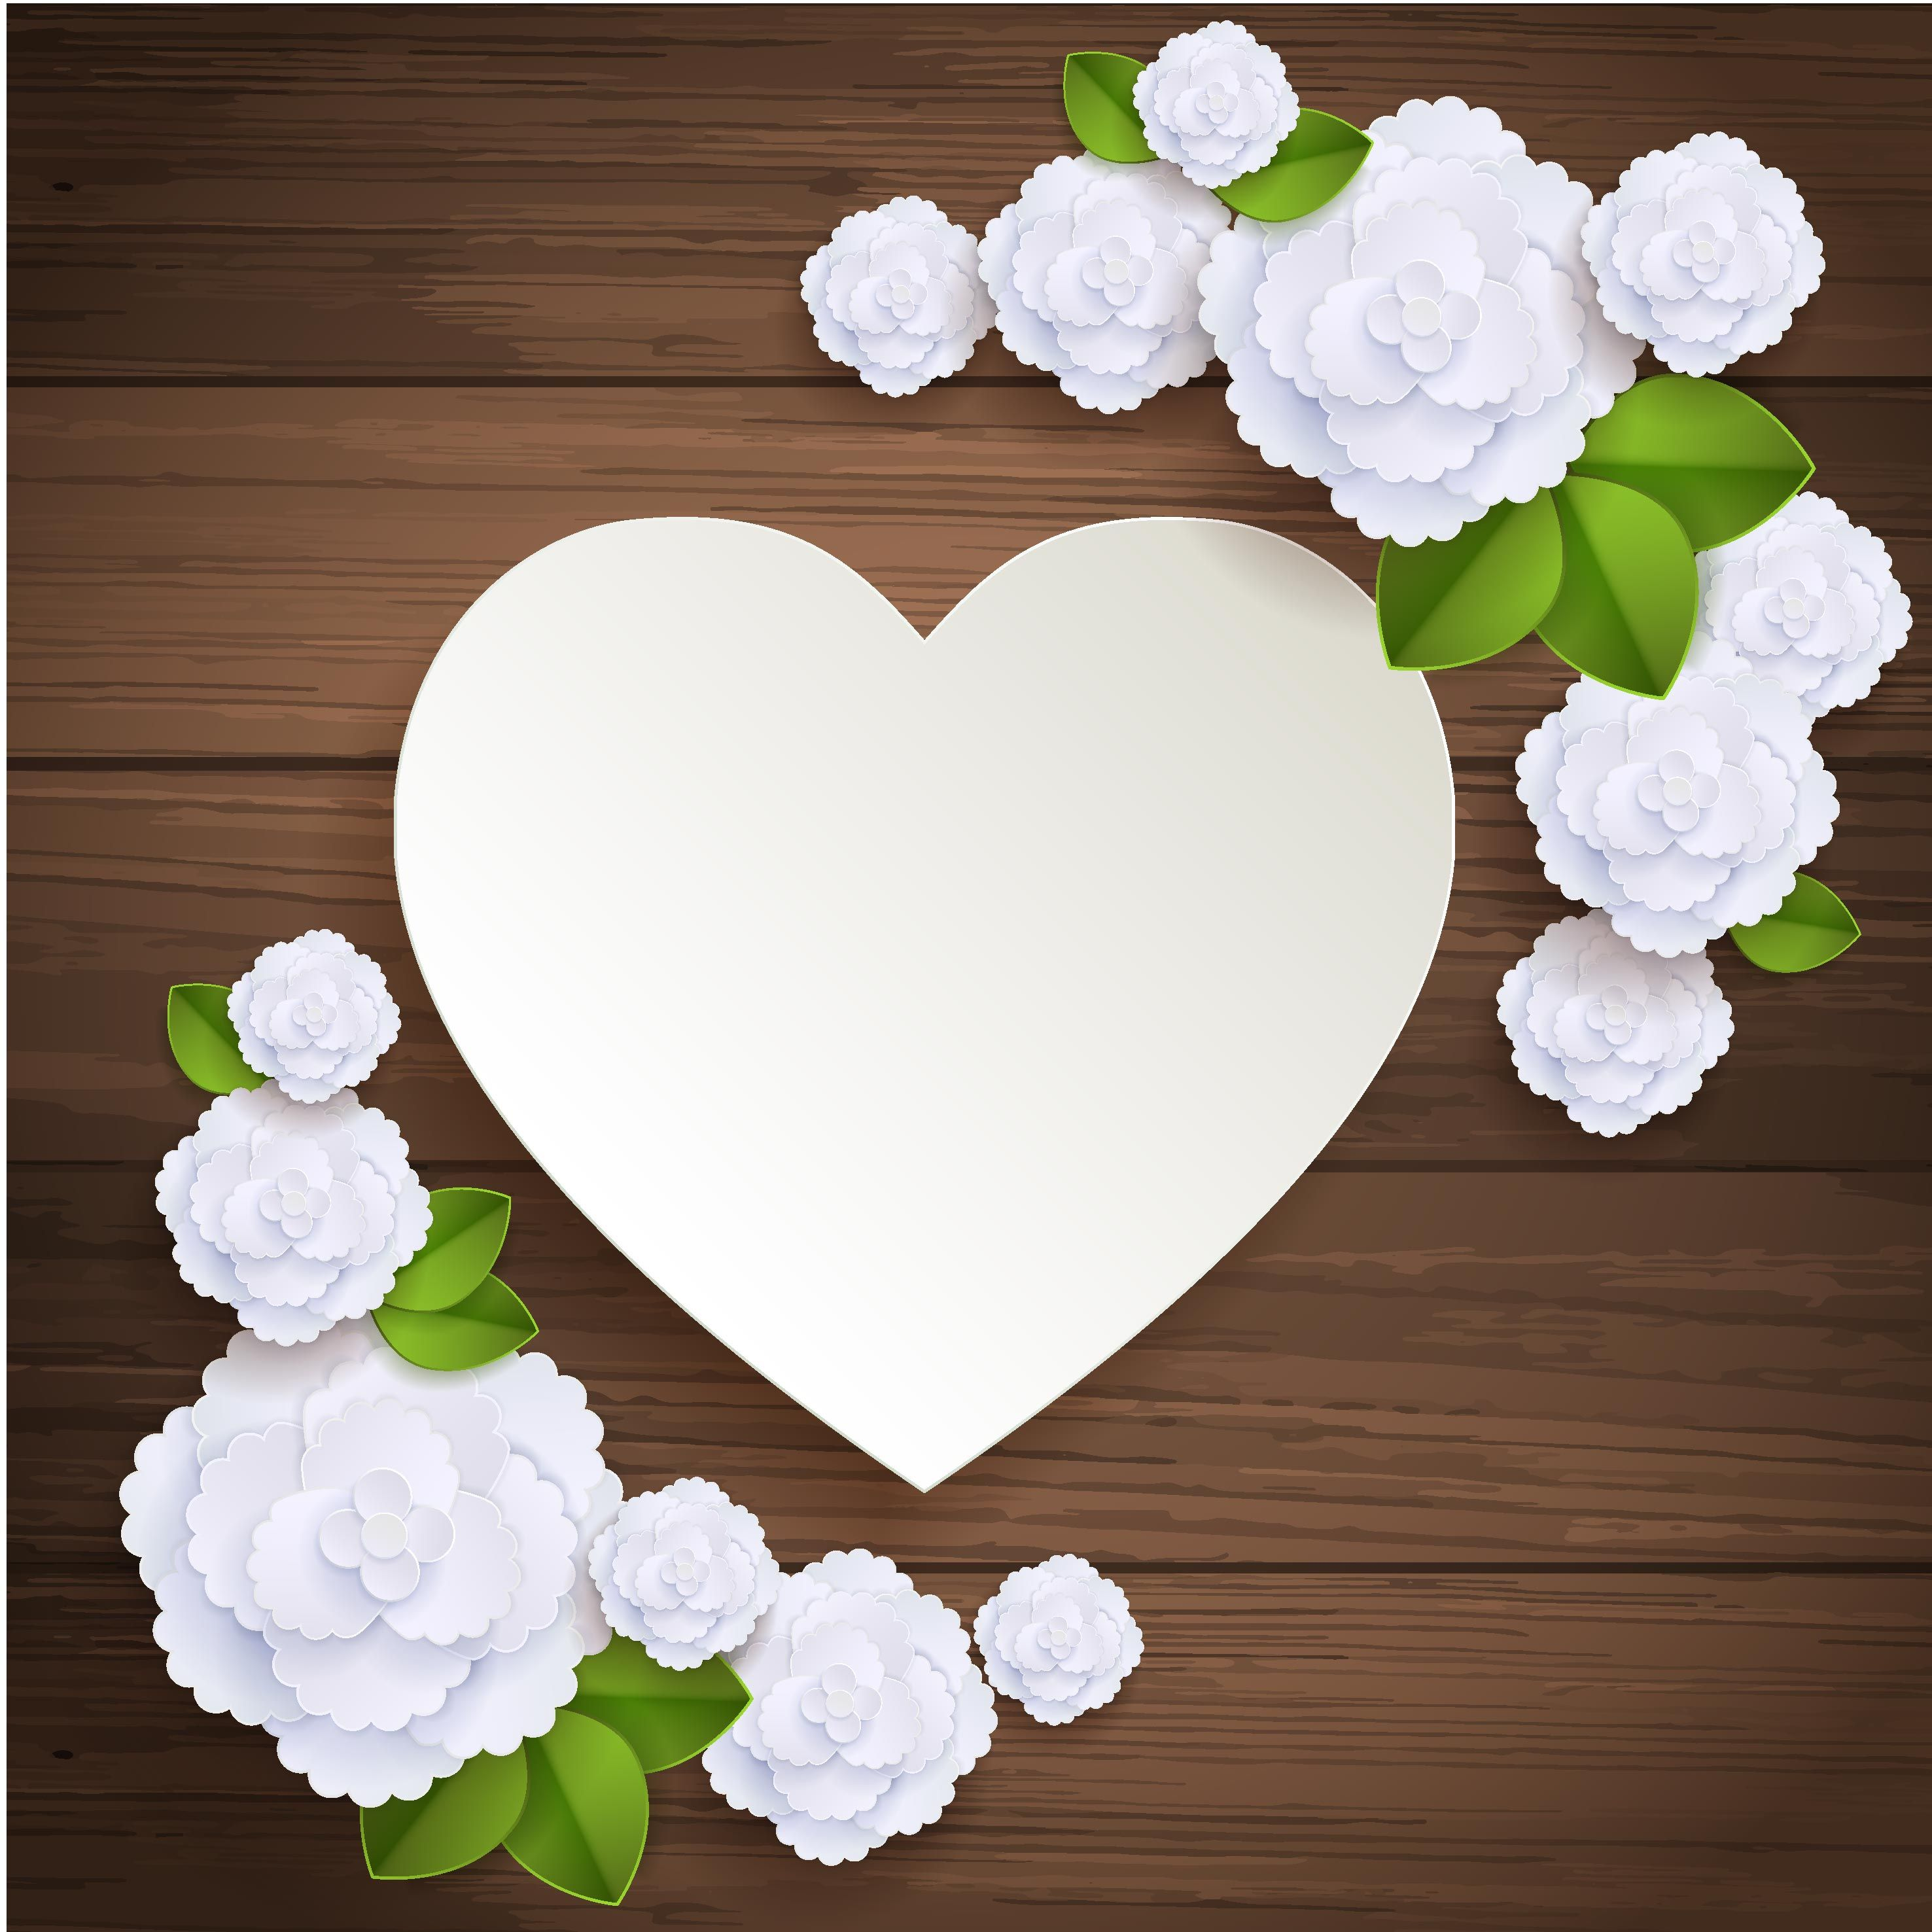 Heart Shaped White Flowers Hand Painted Wooden Background Flower Background Wallpaper Flower Frame Print Design Art